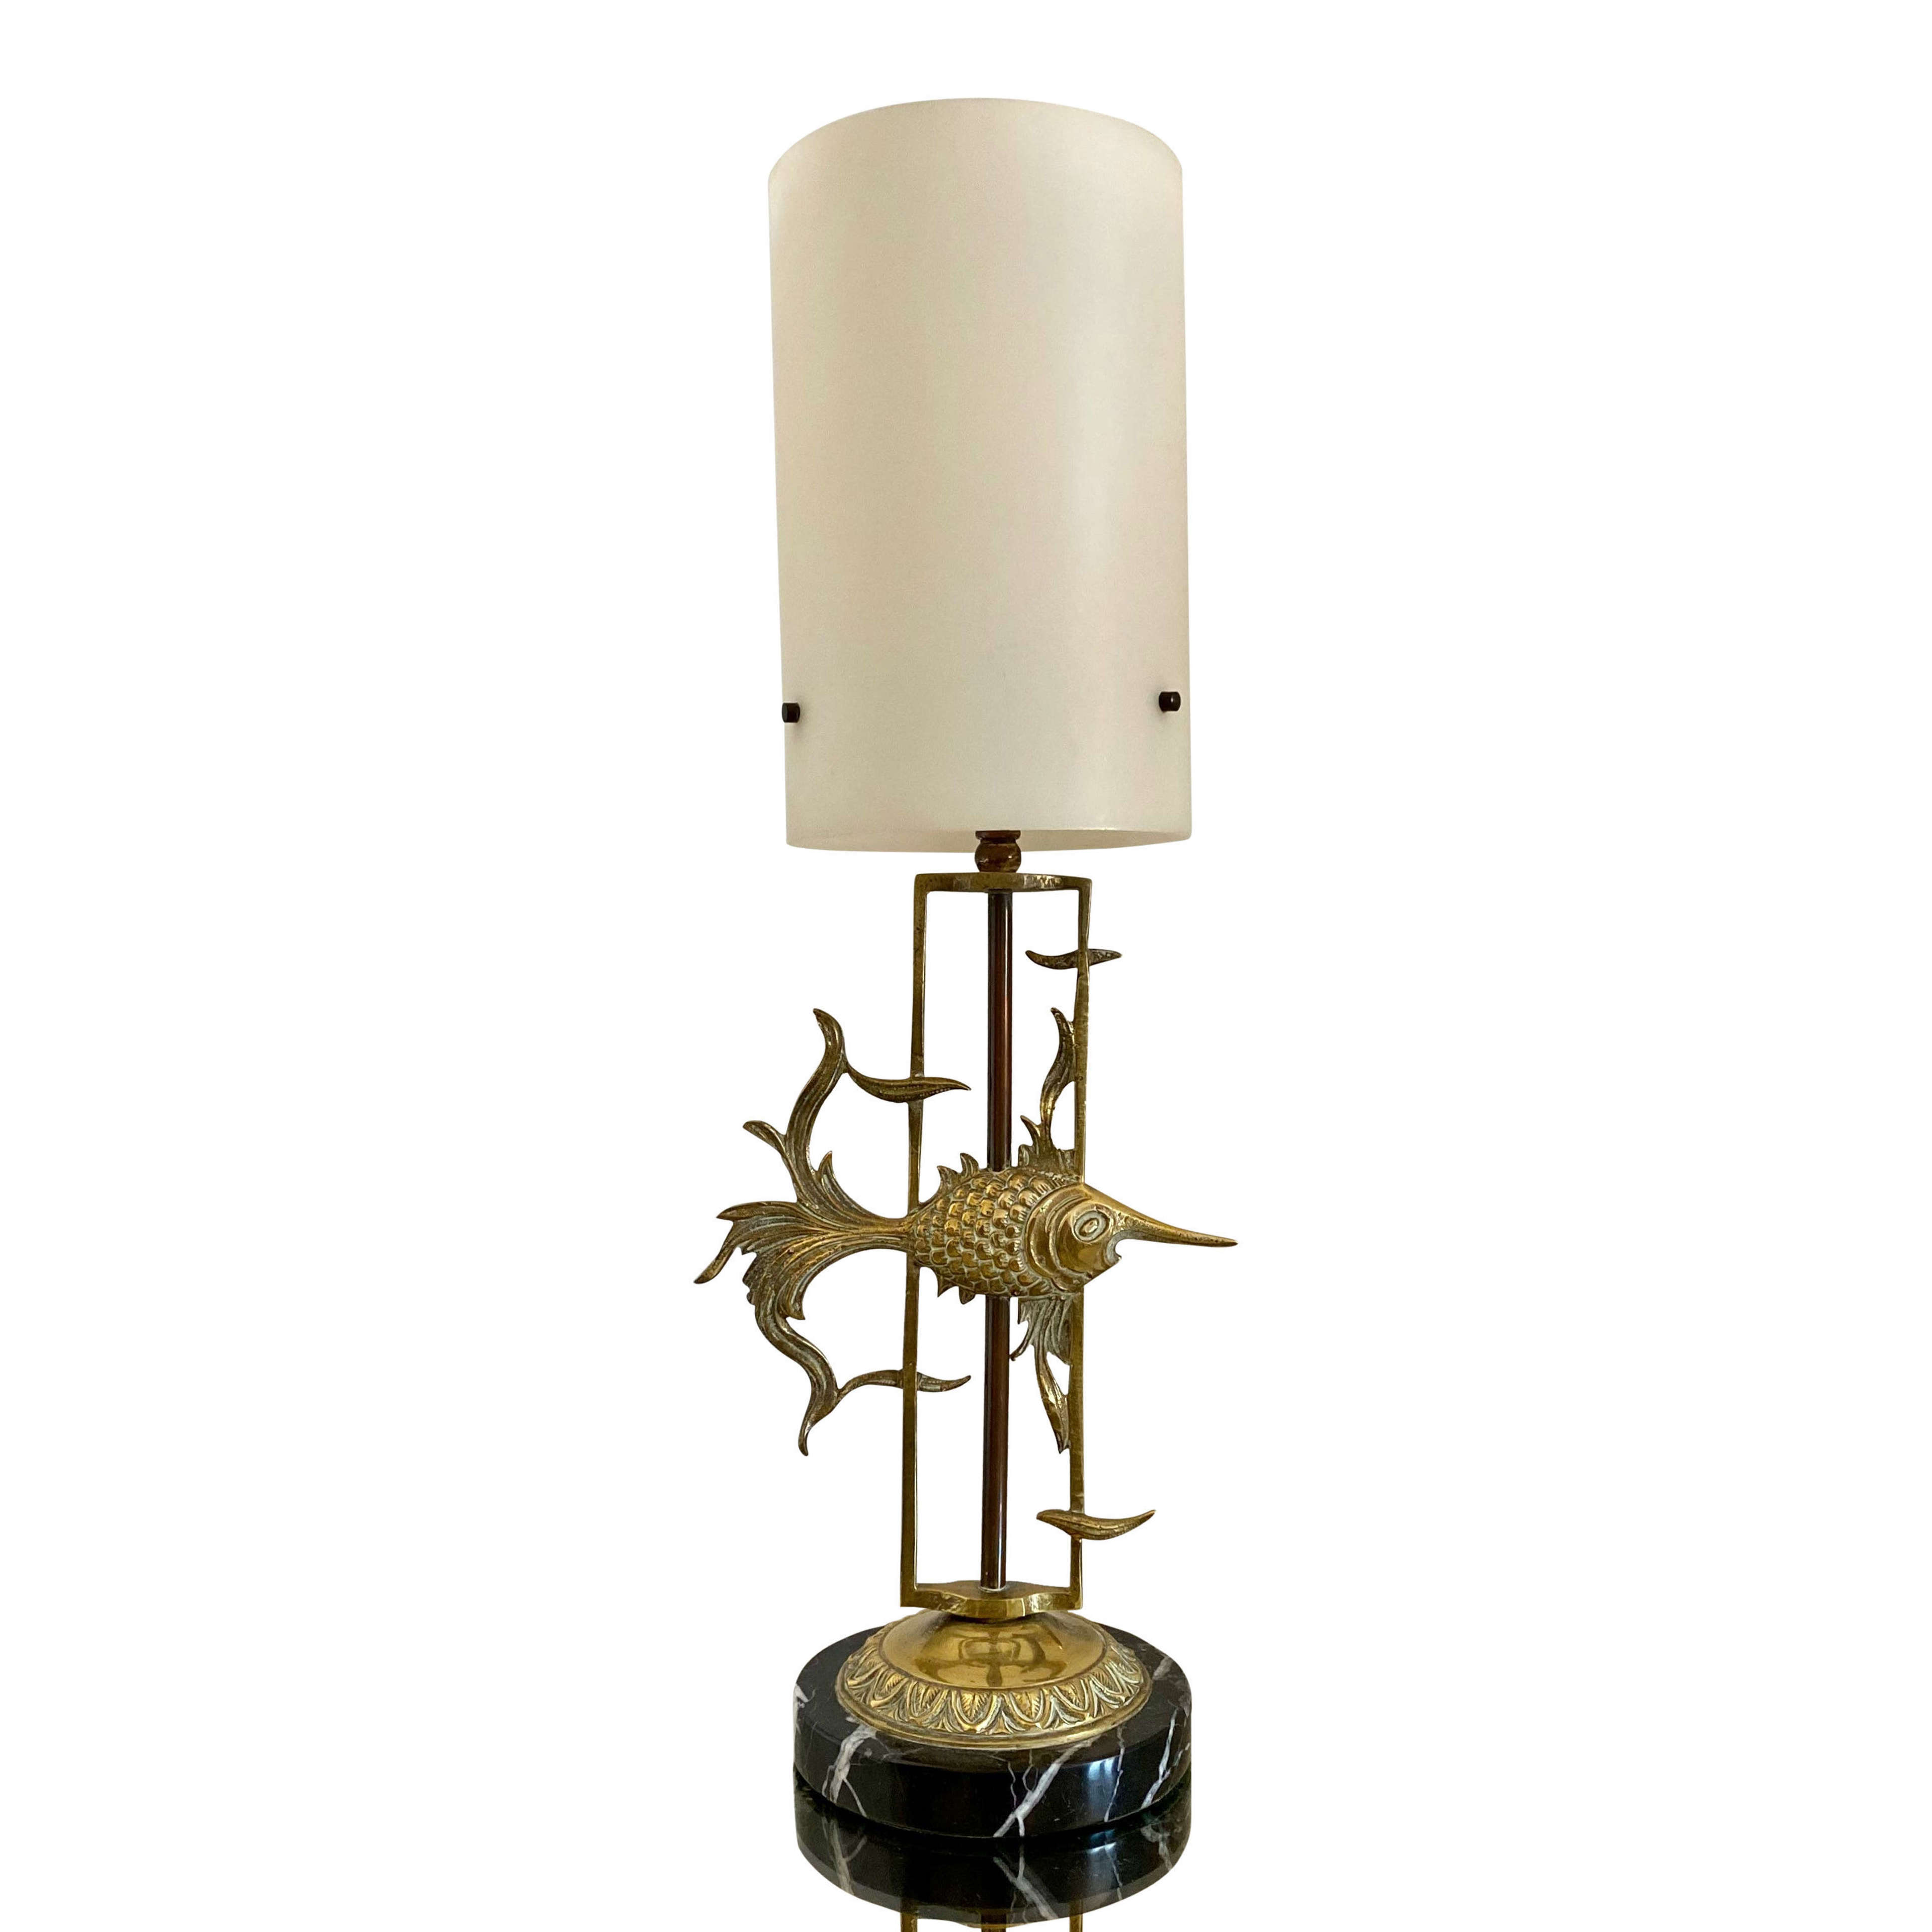 1950s Brass Fish With Marble Base Table Lamp In Antique Table Lamps